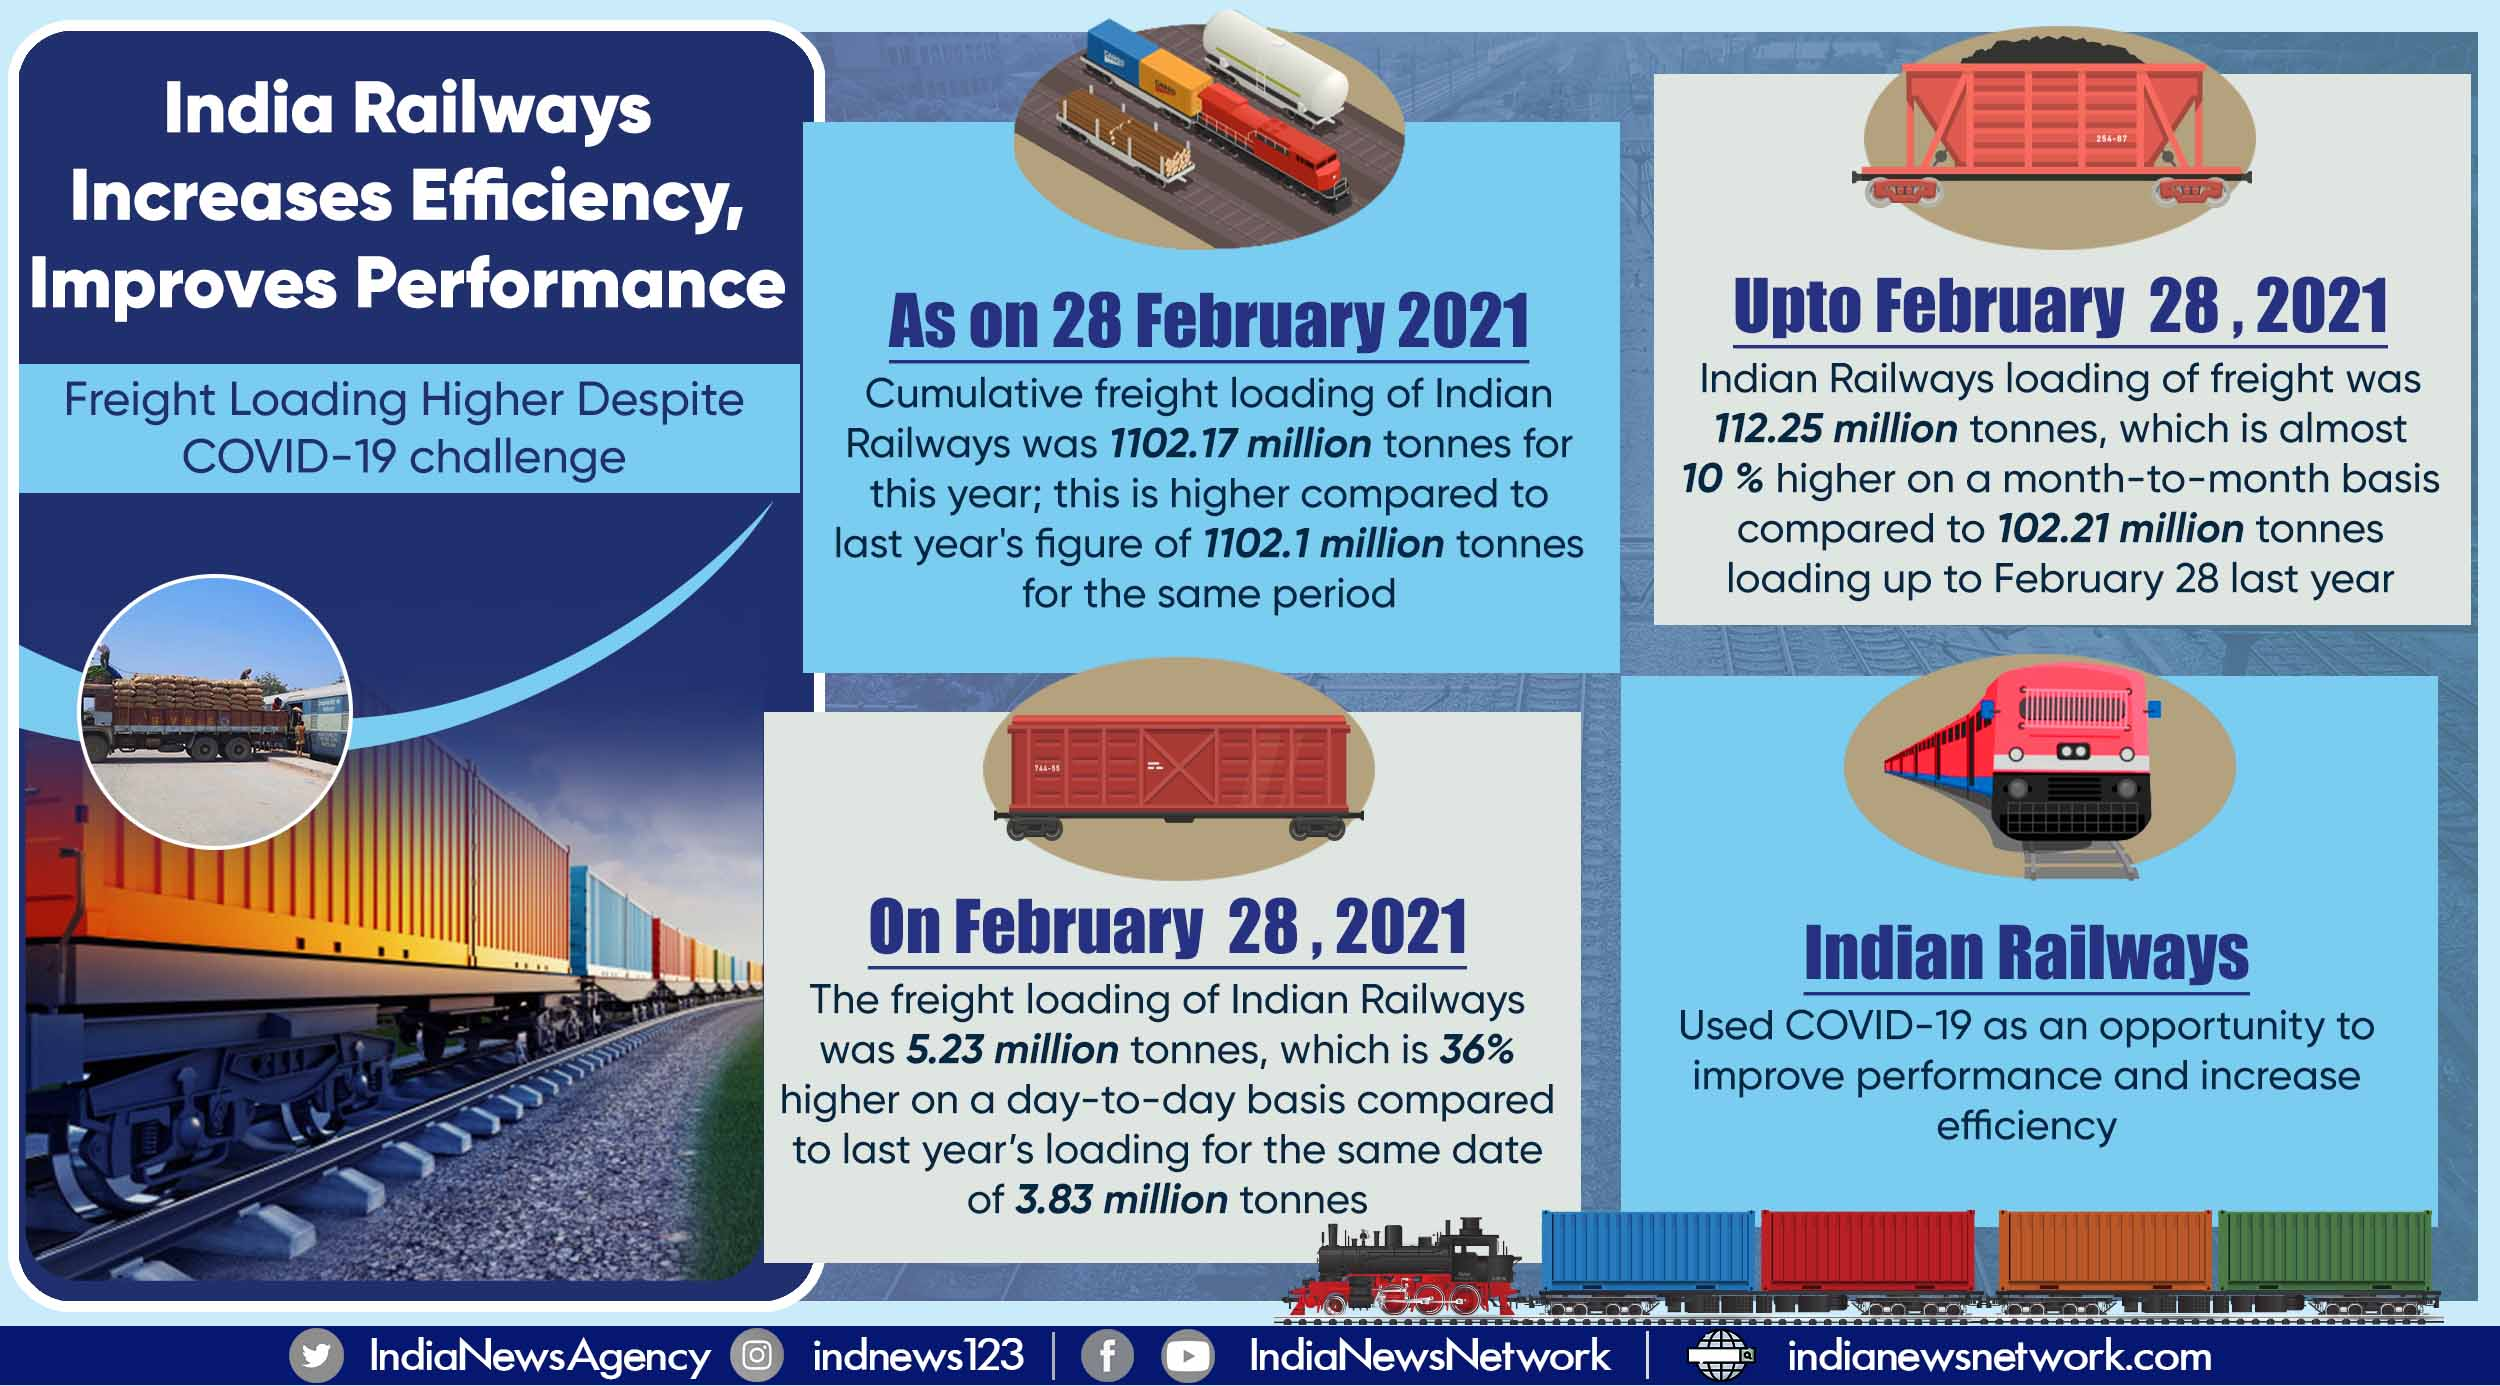 Despite COVID-19, Indian Railways crosses last year's freight loading for period ending Feb 28